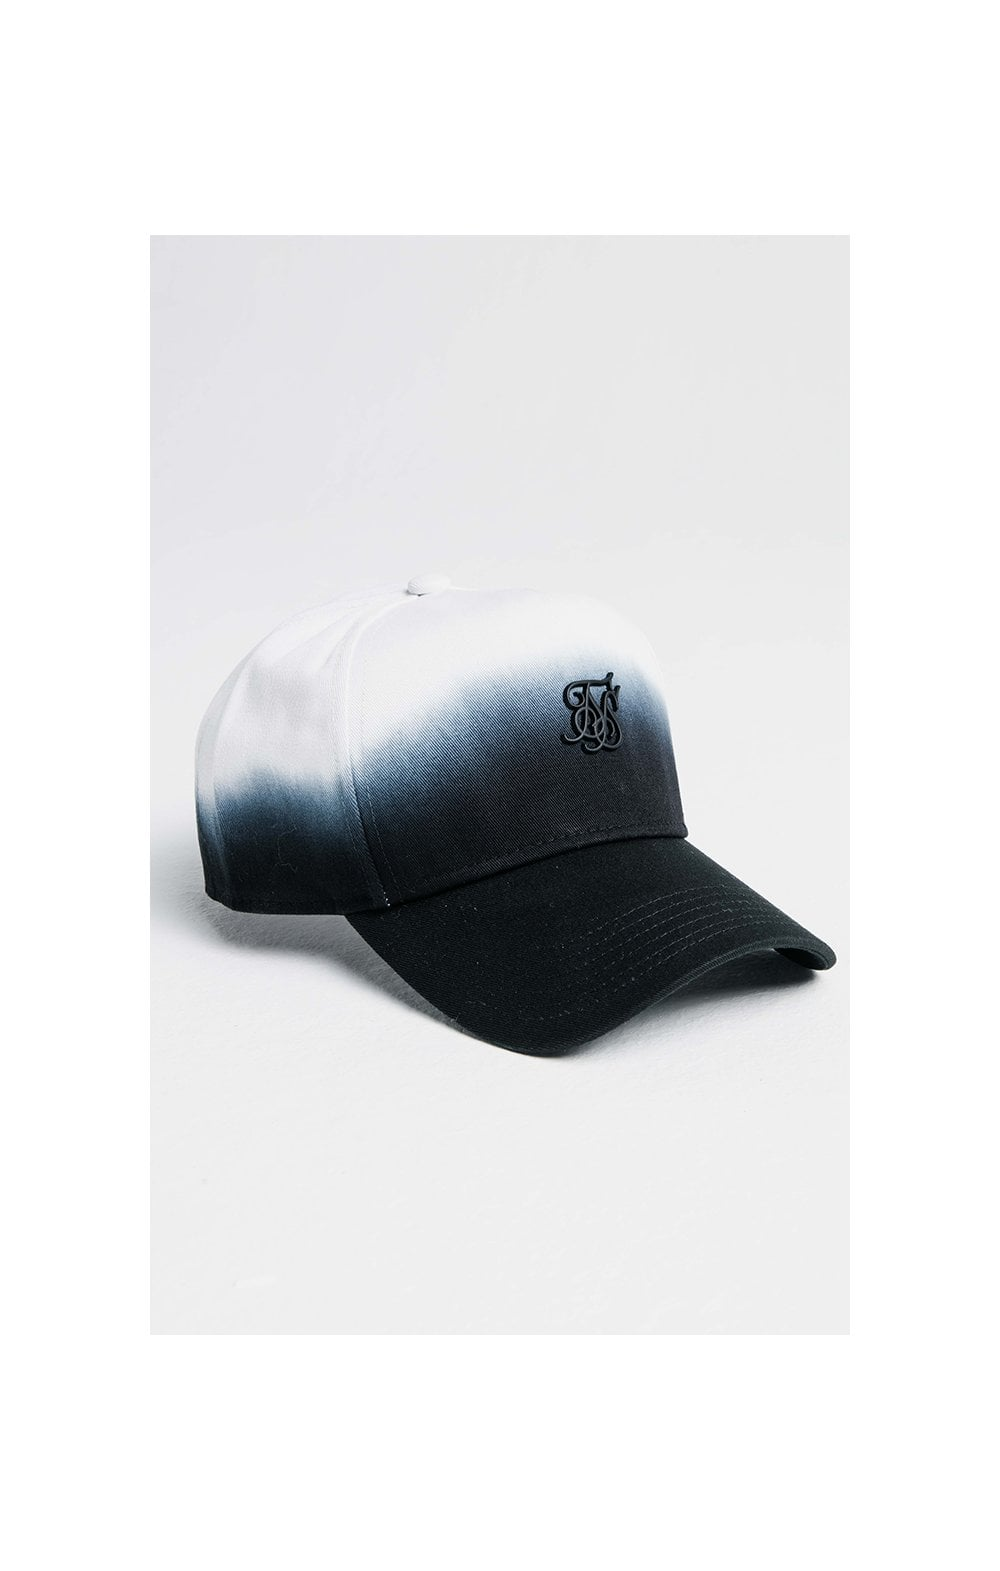 SikSilk Full Fade Trucker - Navy & White